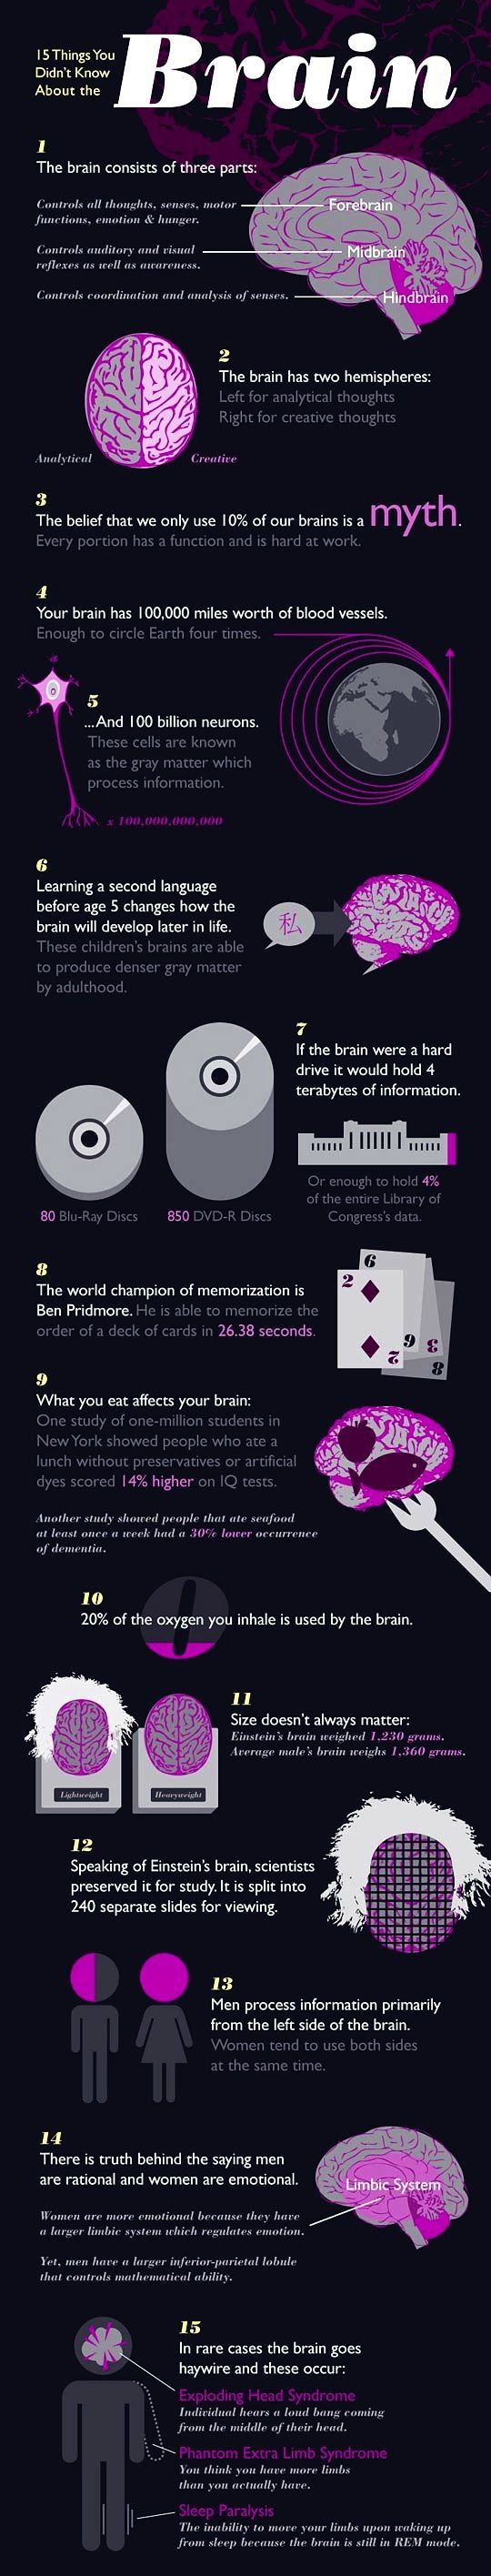 15 Things You Didn't Know About Your Brain